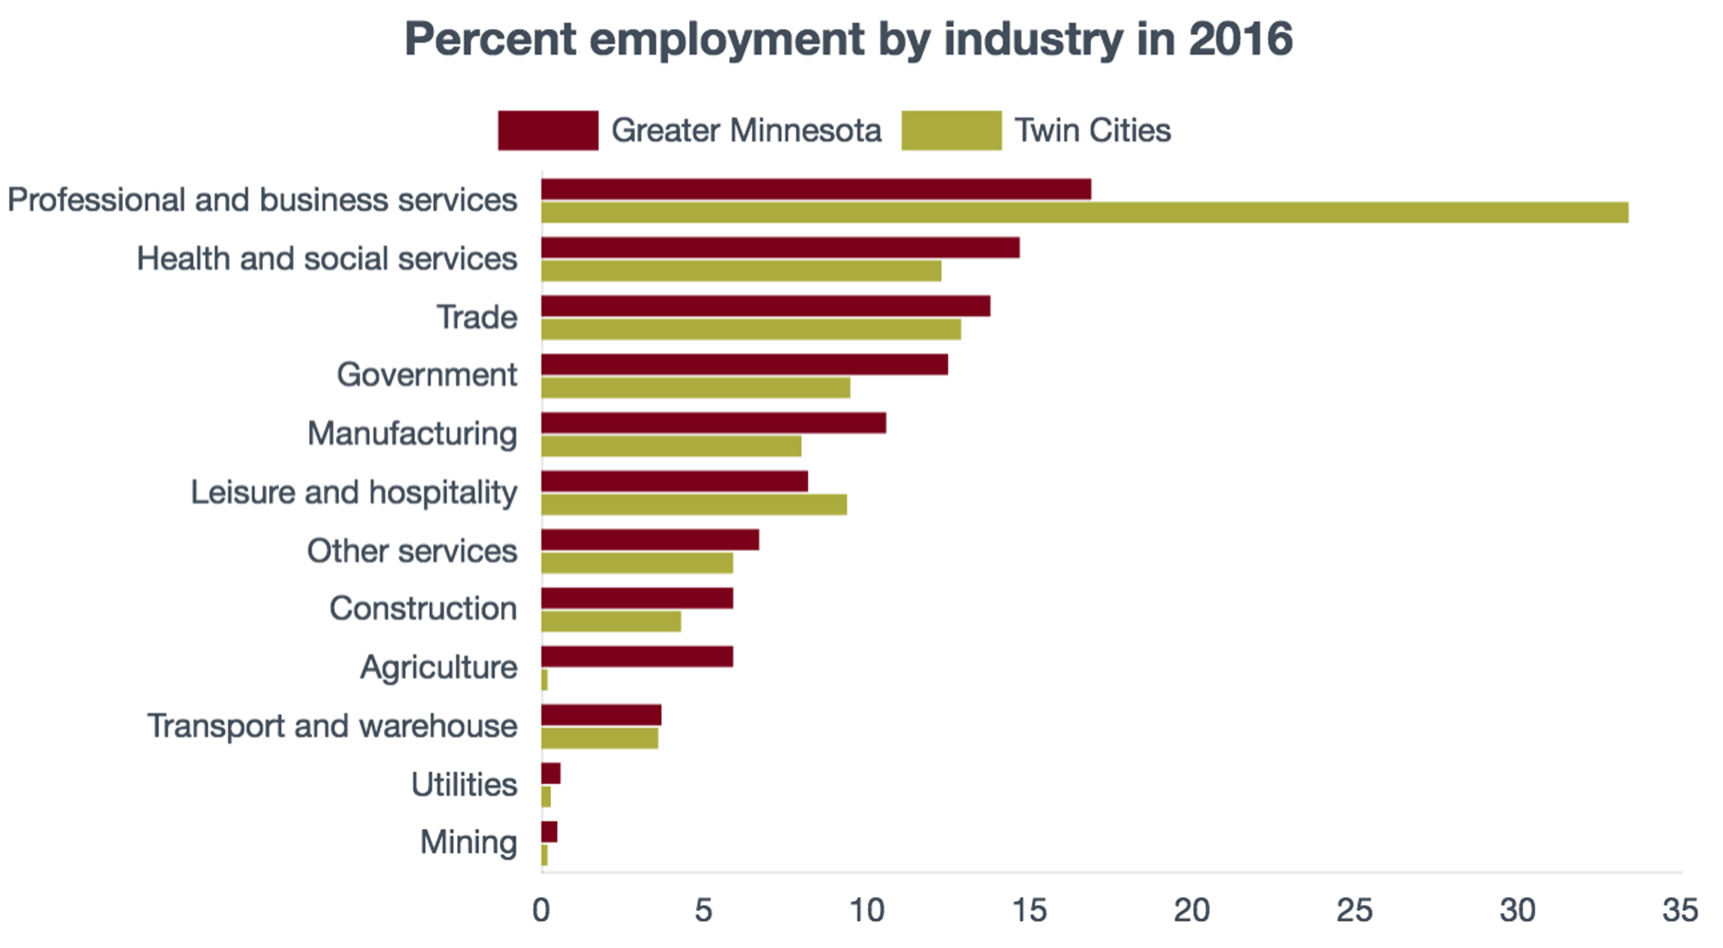 Percentage employment by industry in rural and urban Minnesota